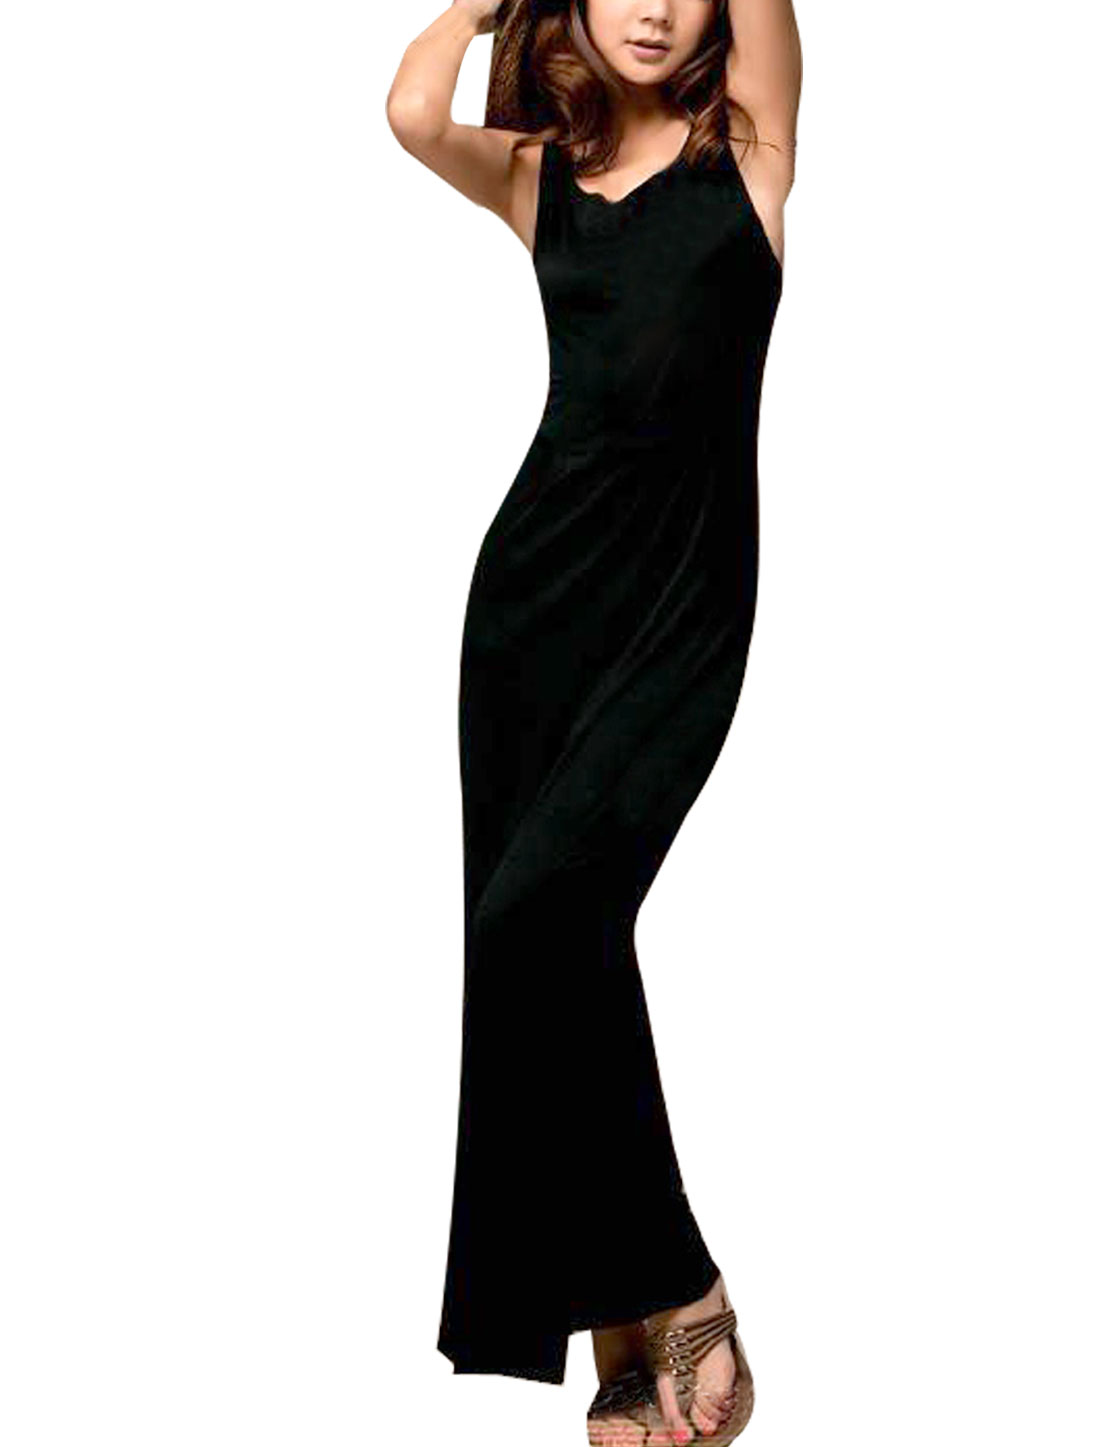 Ladies Scoop Neck Deep V-Back Sleeveless Maxi Dress Black L